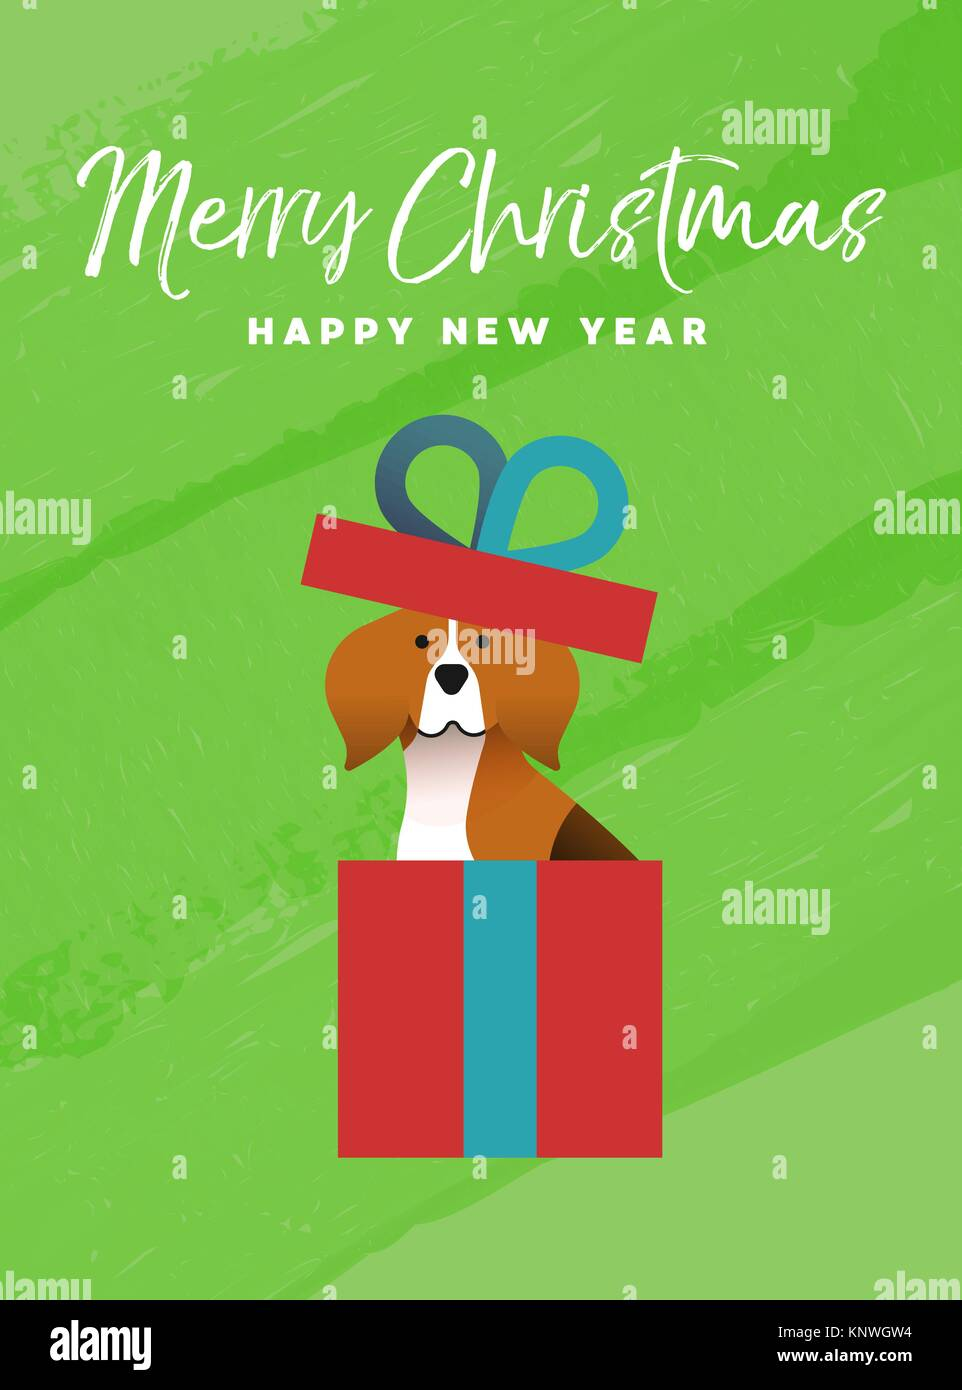 Merry christmas and happy new year holiday greeting card stock merry christmas and happy new year holiday greeting card illustration funny beagle dog inside xmas gift box on colorful texture background eps10 vec m4hsunfo